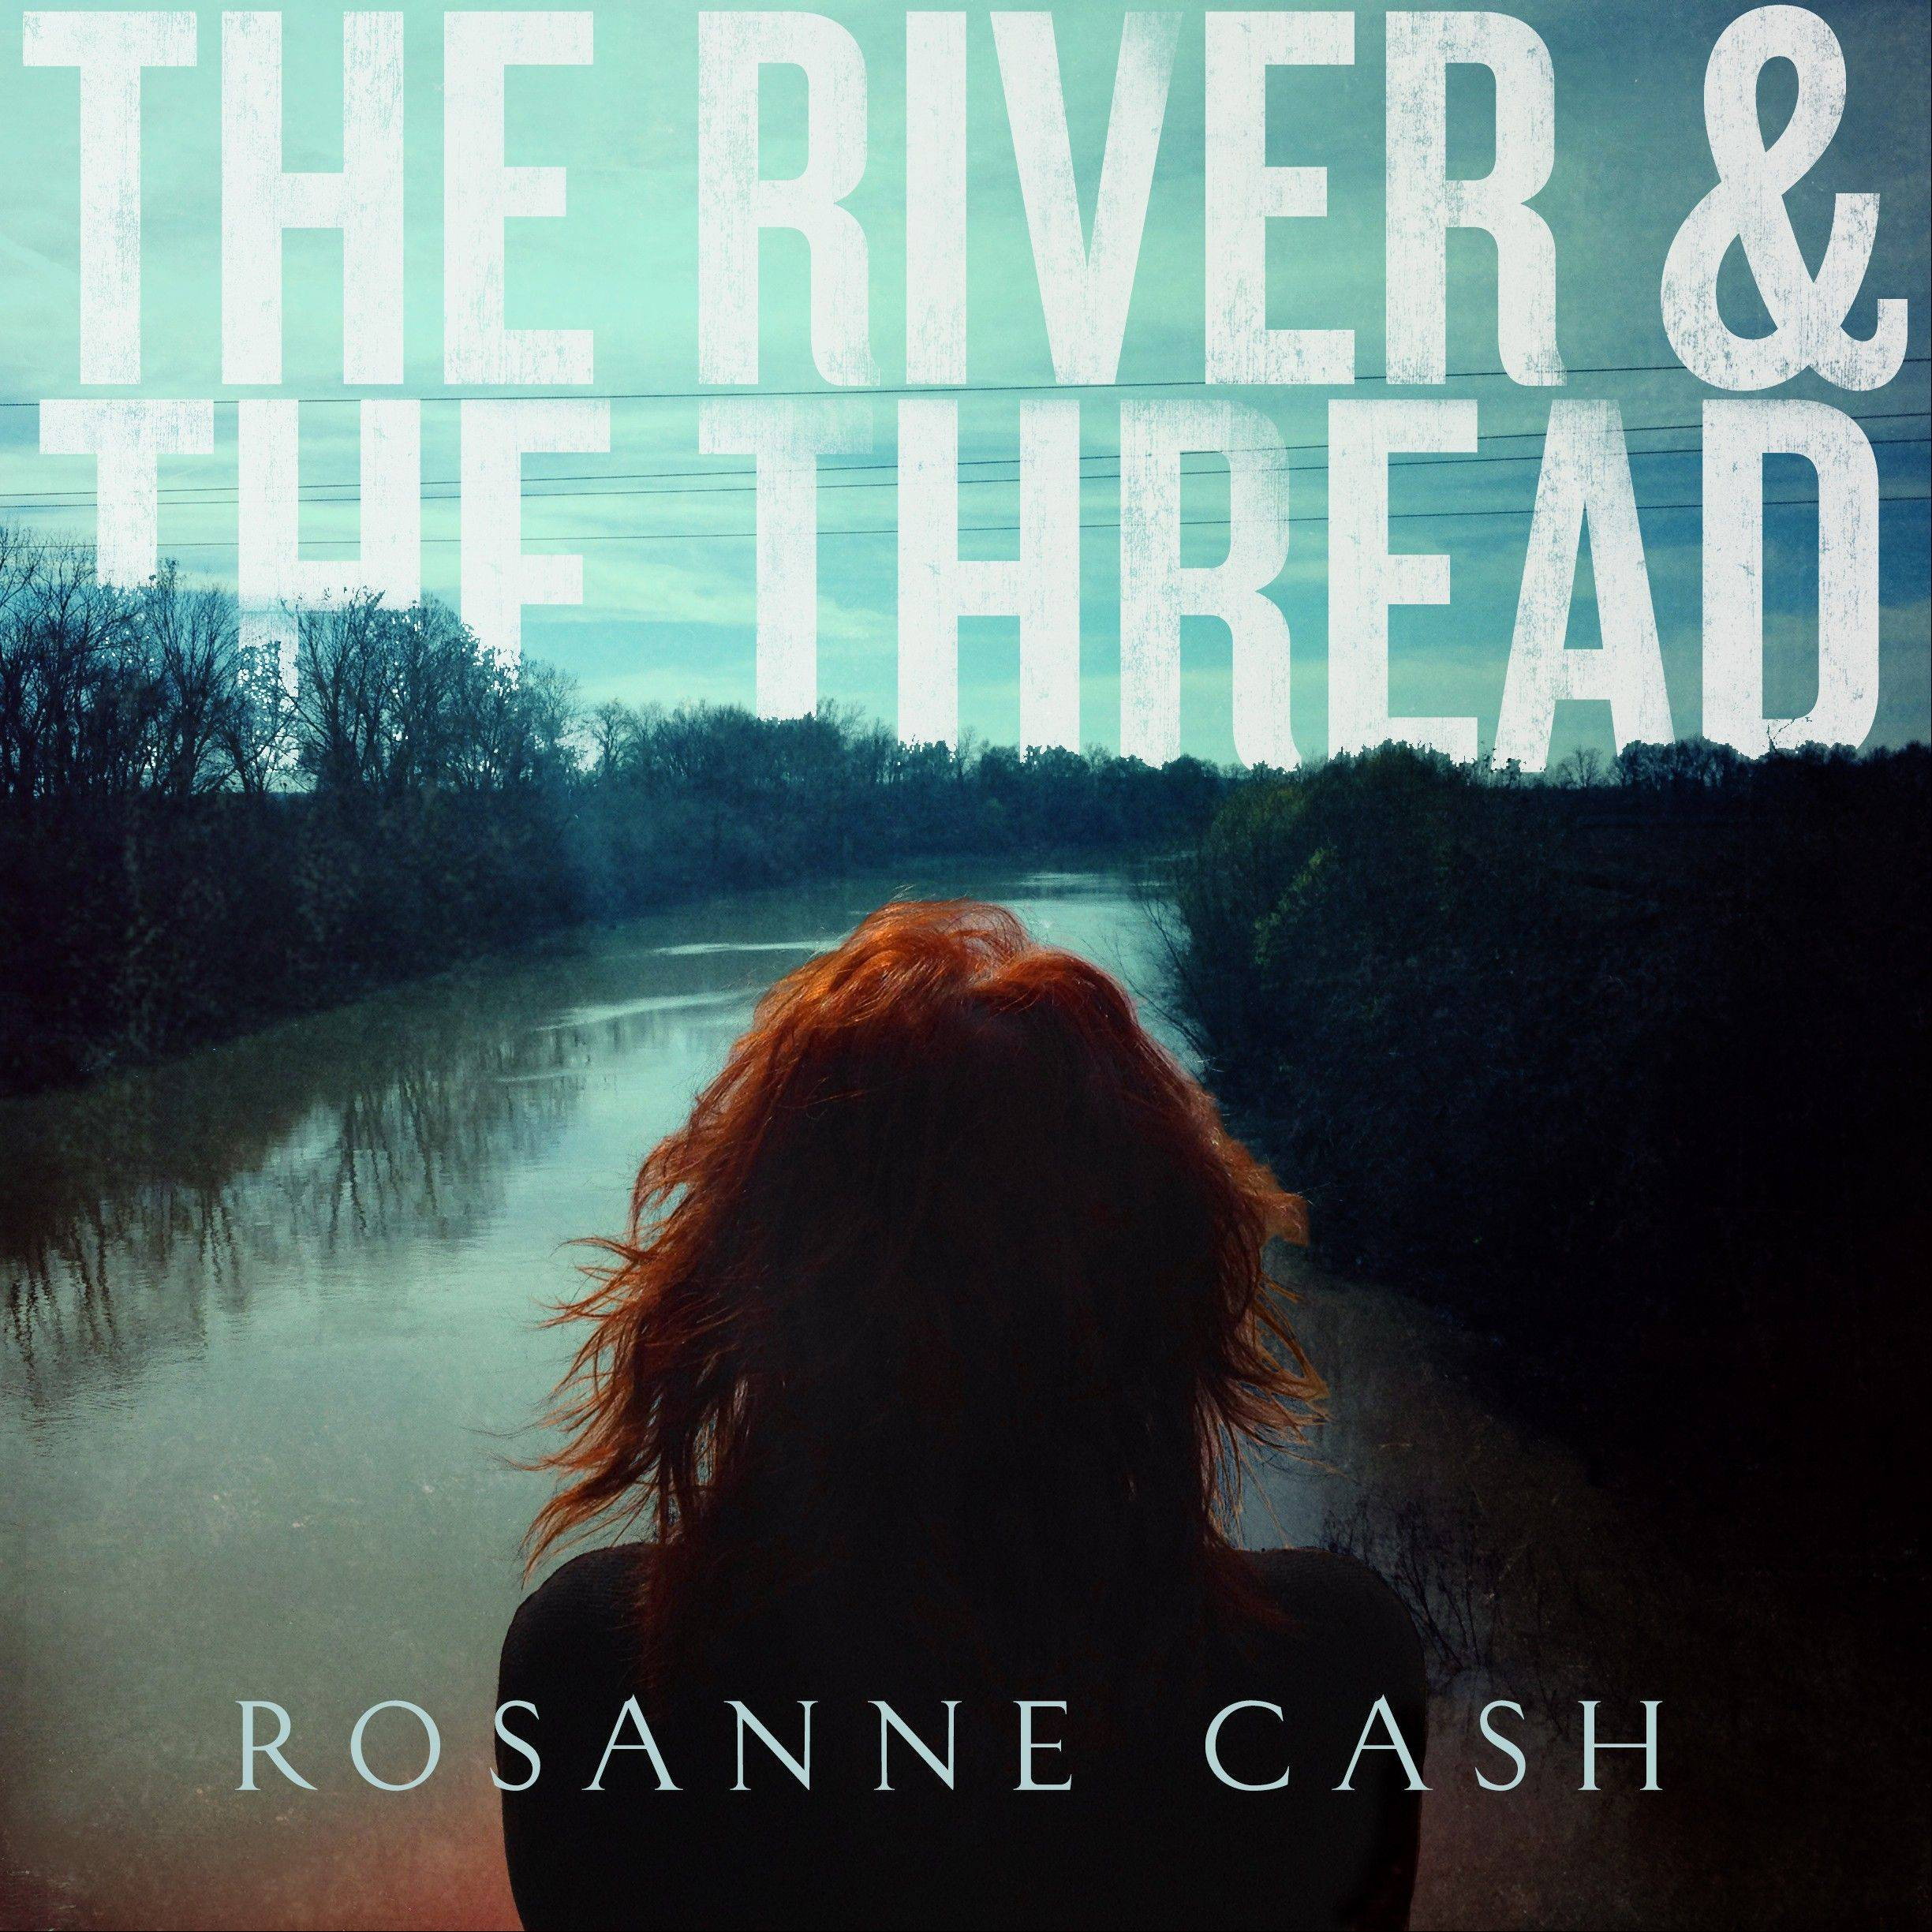 """The River & The Thread"" is the latest release by Rosanne Cash."